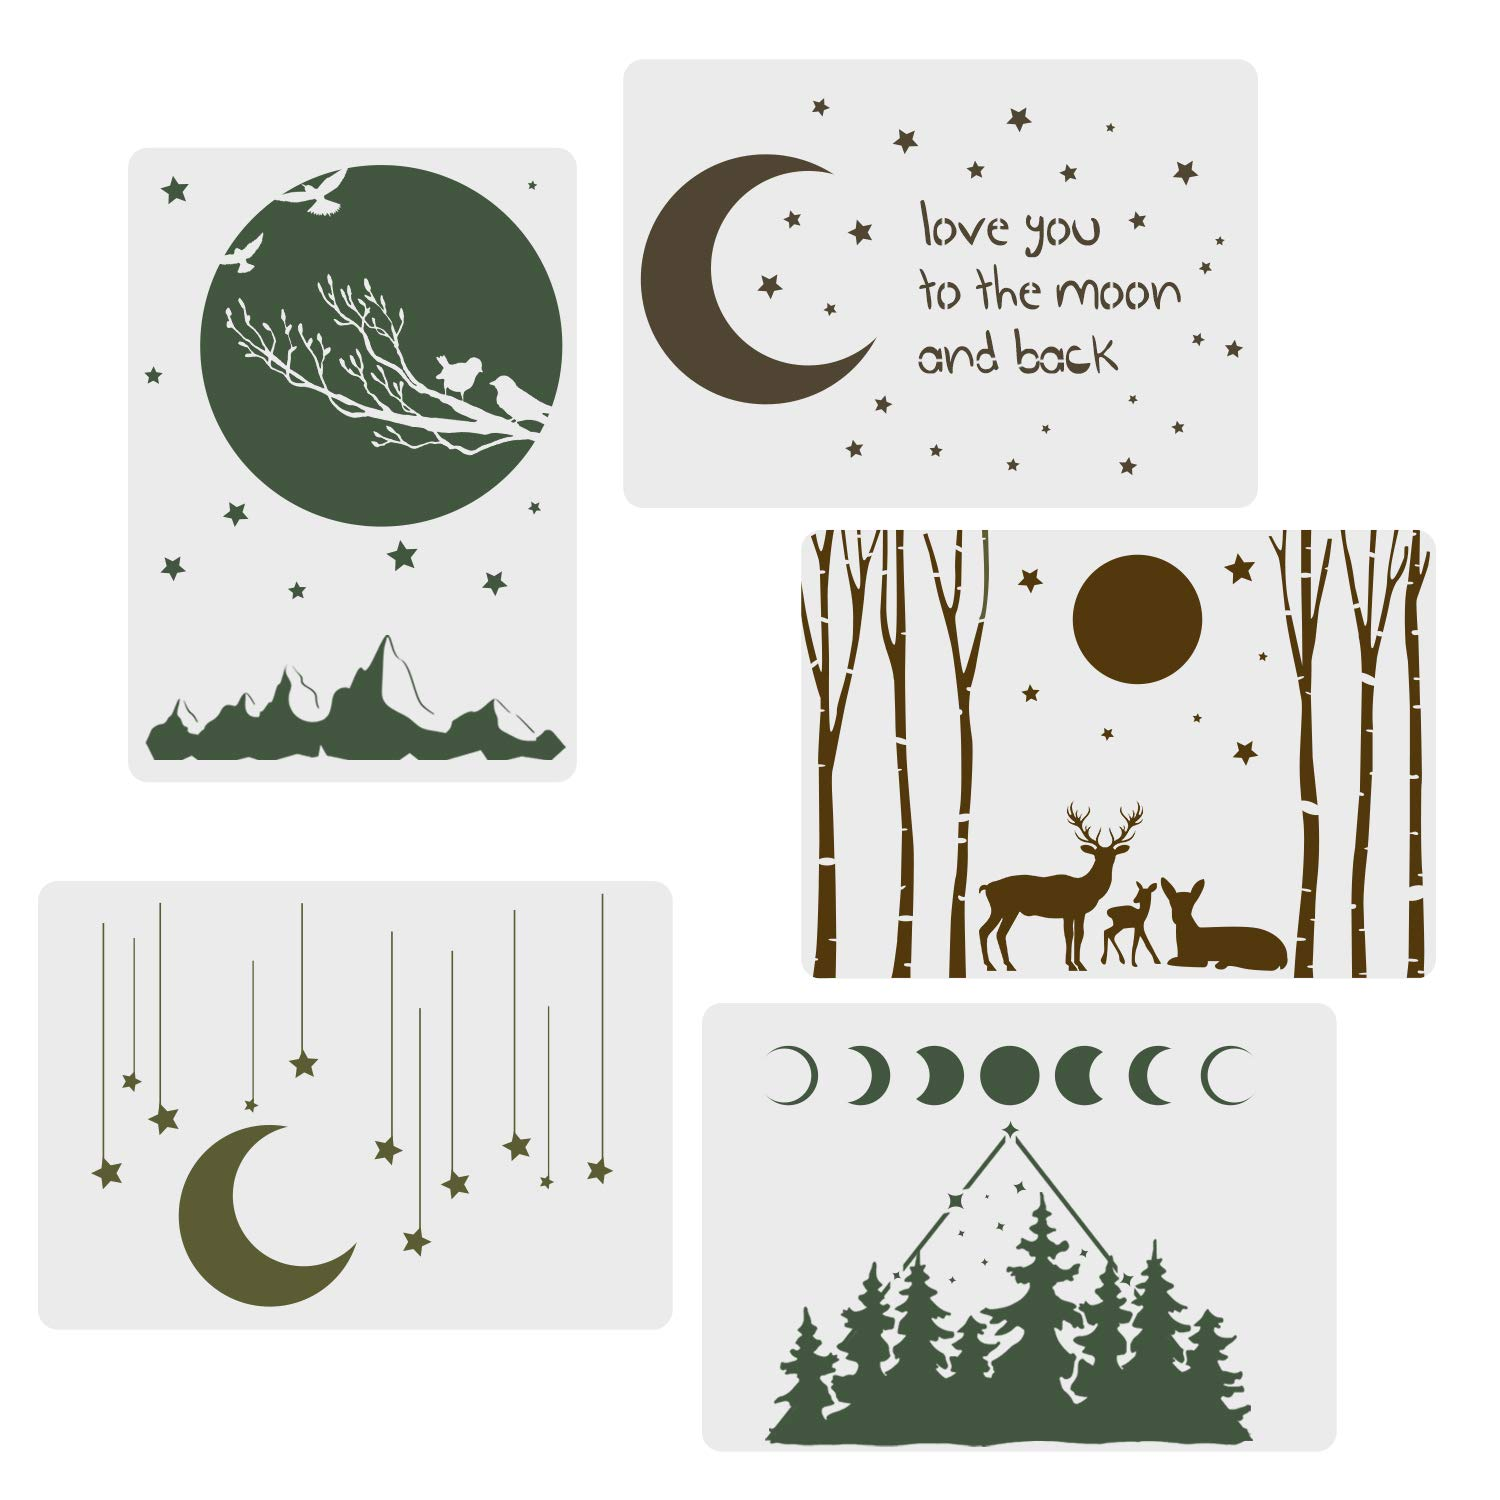 CODOHI 5 Packs Moon Stars Stencils - Night Sky Elk Forest Pattern Moon Phase A4 Art Reusable Mylar Template for Journaling, DIY Home Decor 11.7''x 8.26'' by CODOHI